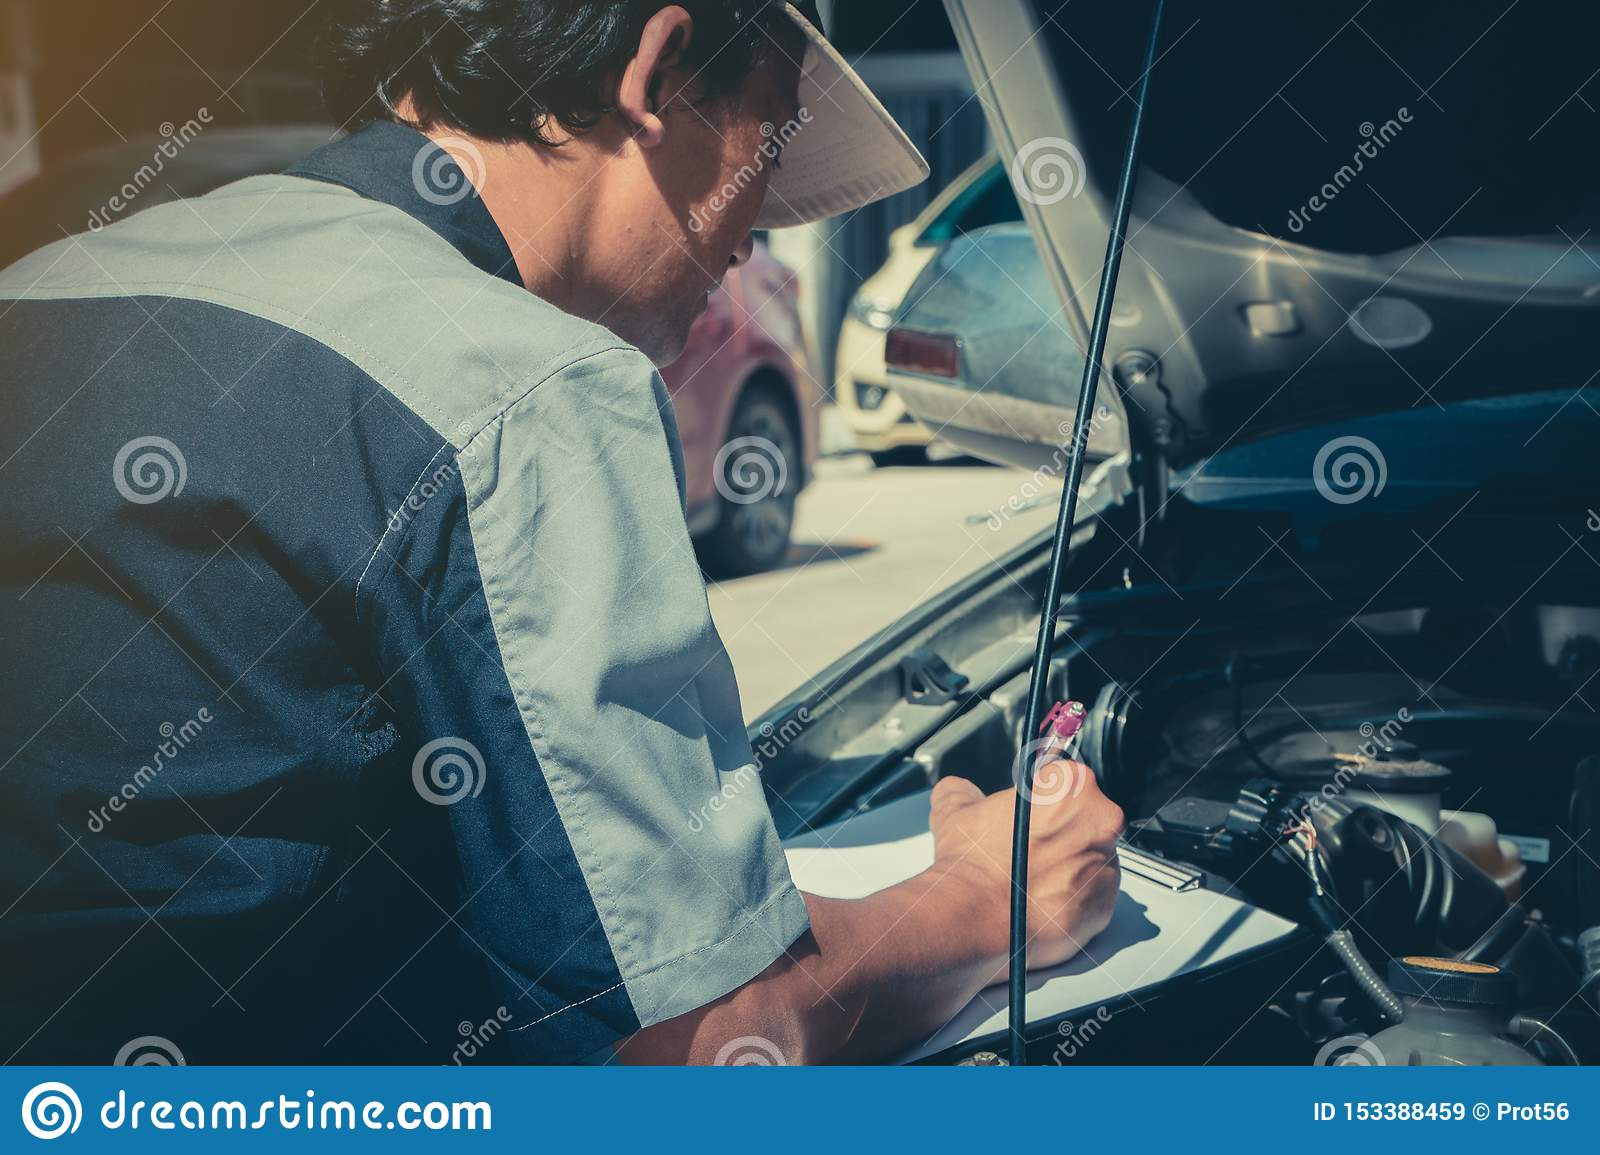 Professional car repair technicians inspect the engine according to the checklist documents to ensure that they are inspected acco